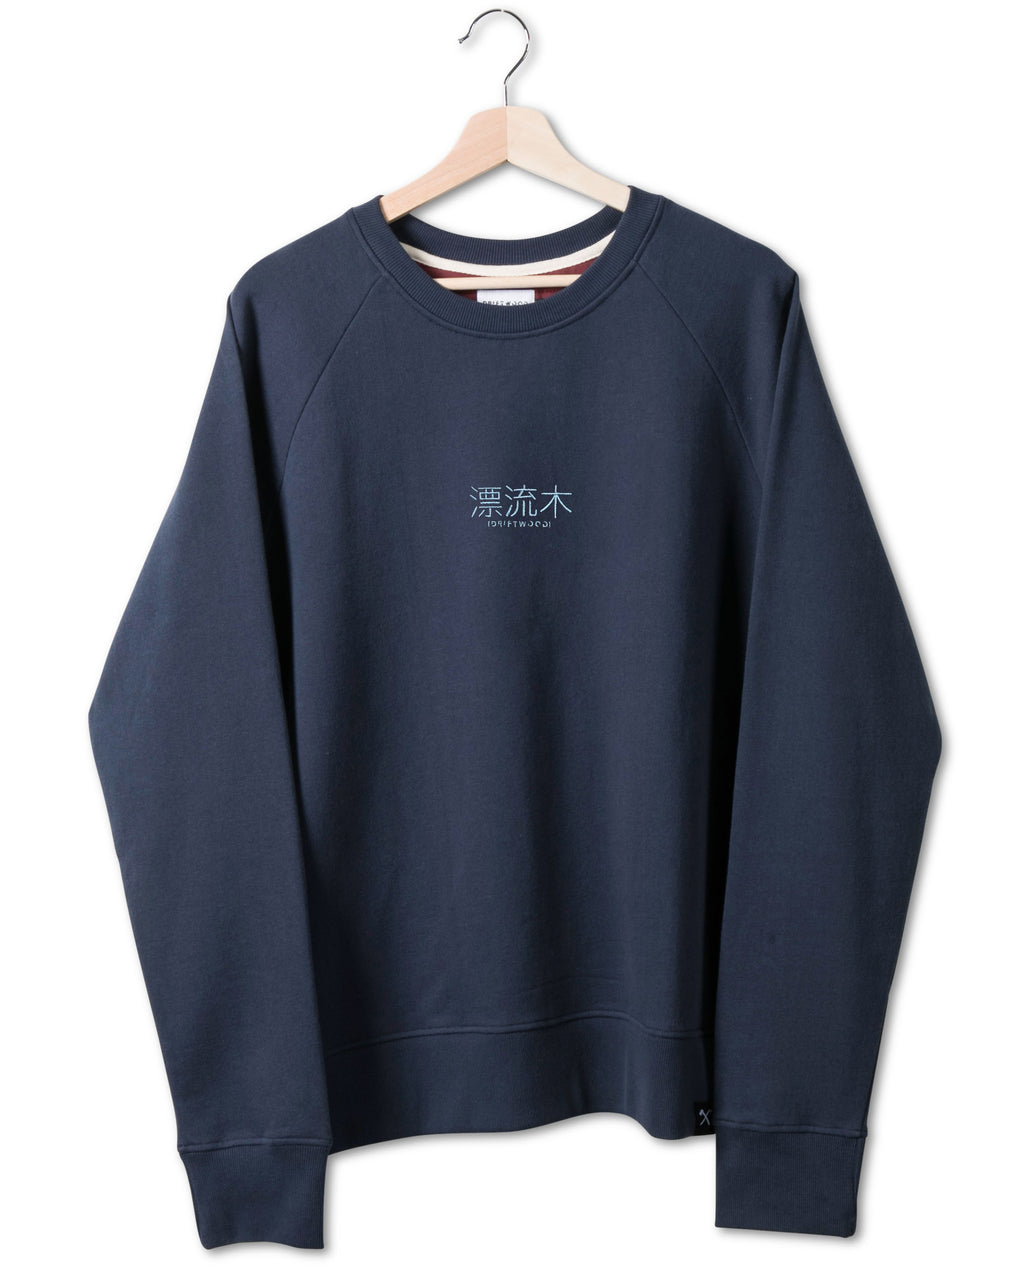 Sweat - organic cotton - Japanese Driftwood embroidery - Navy